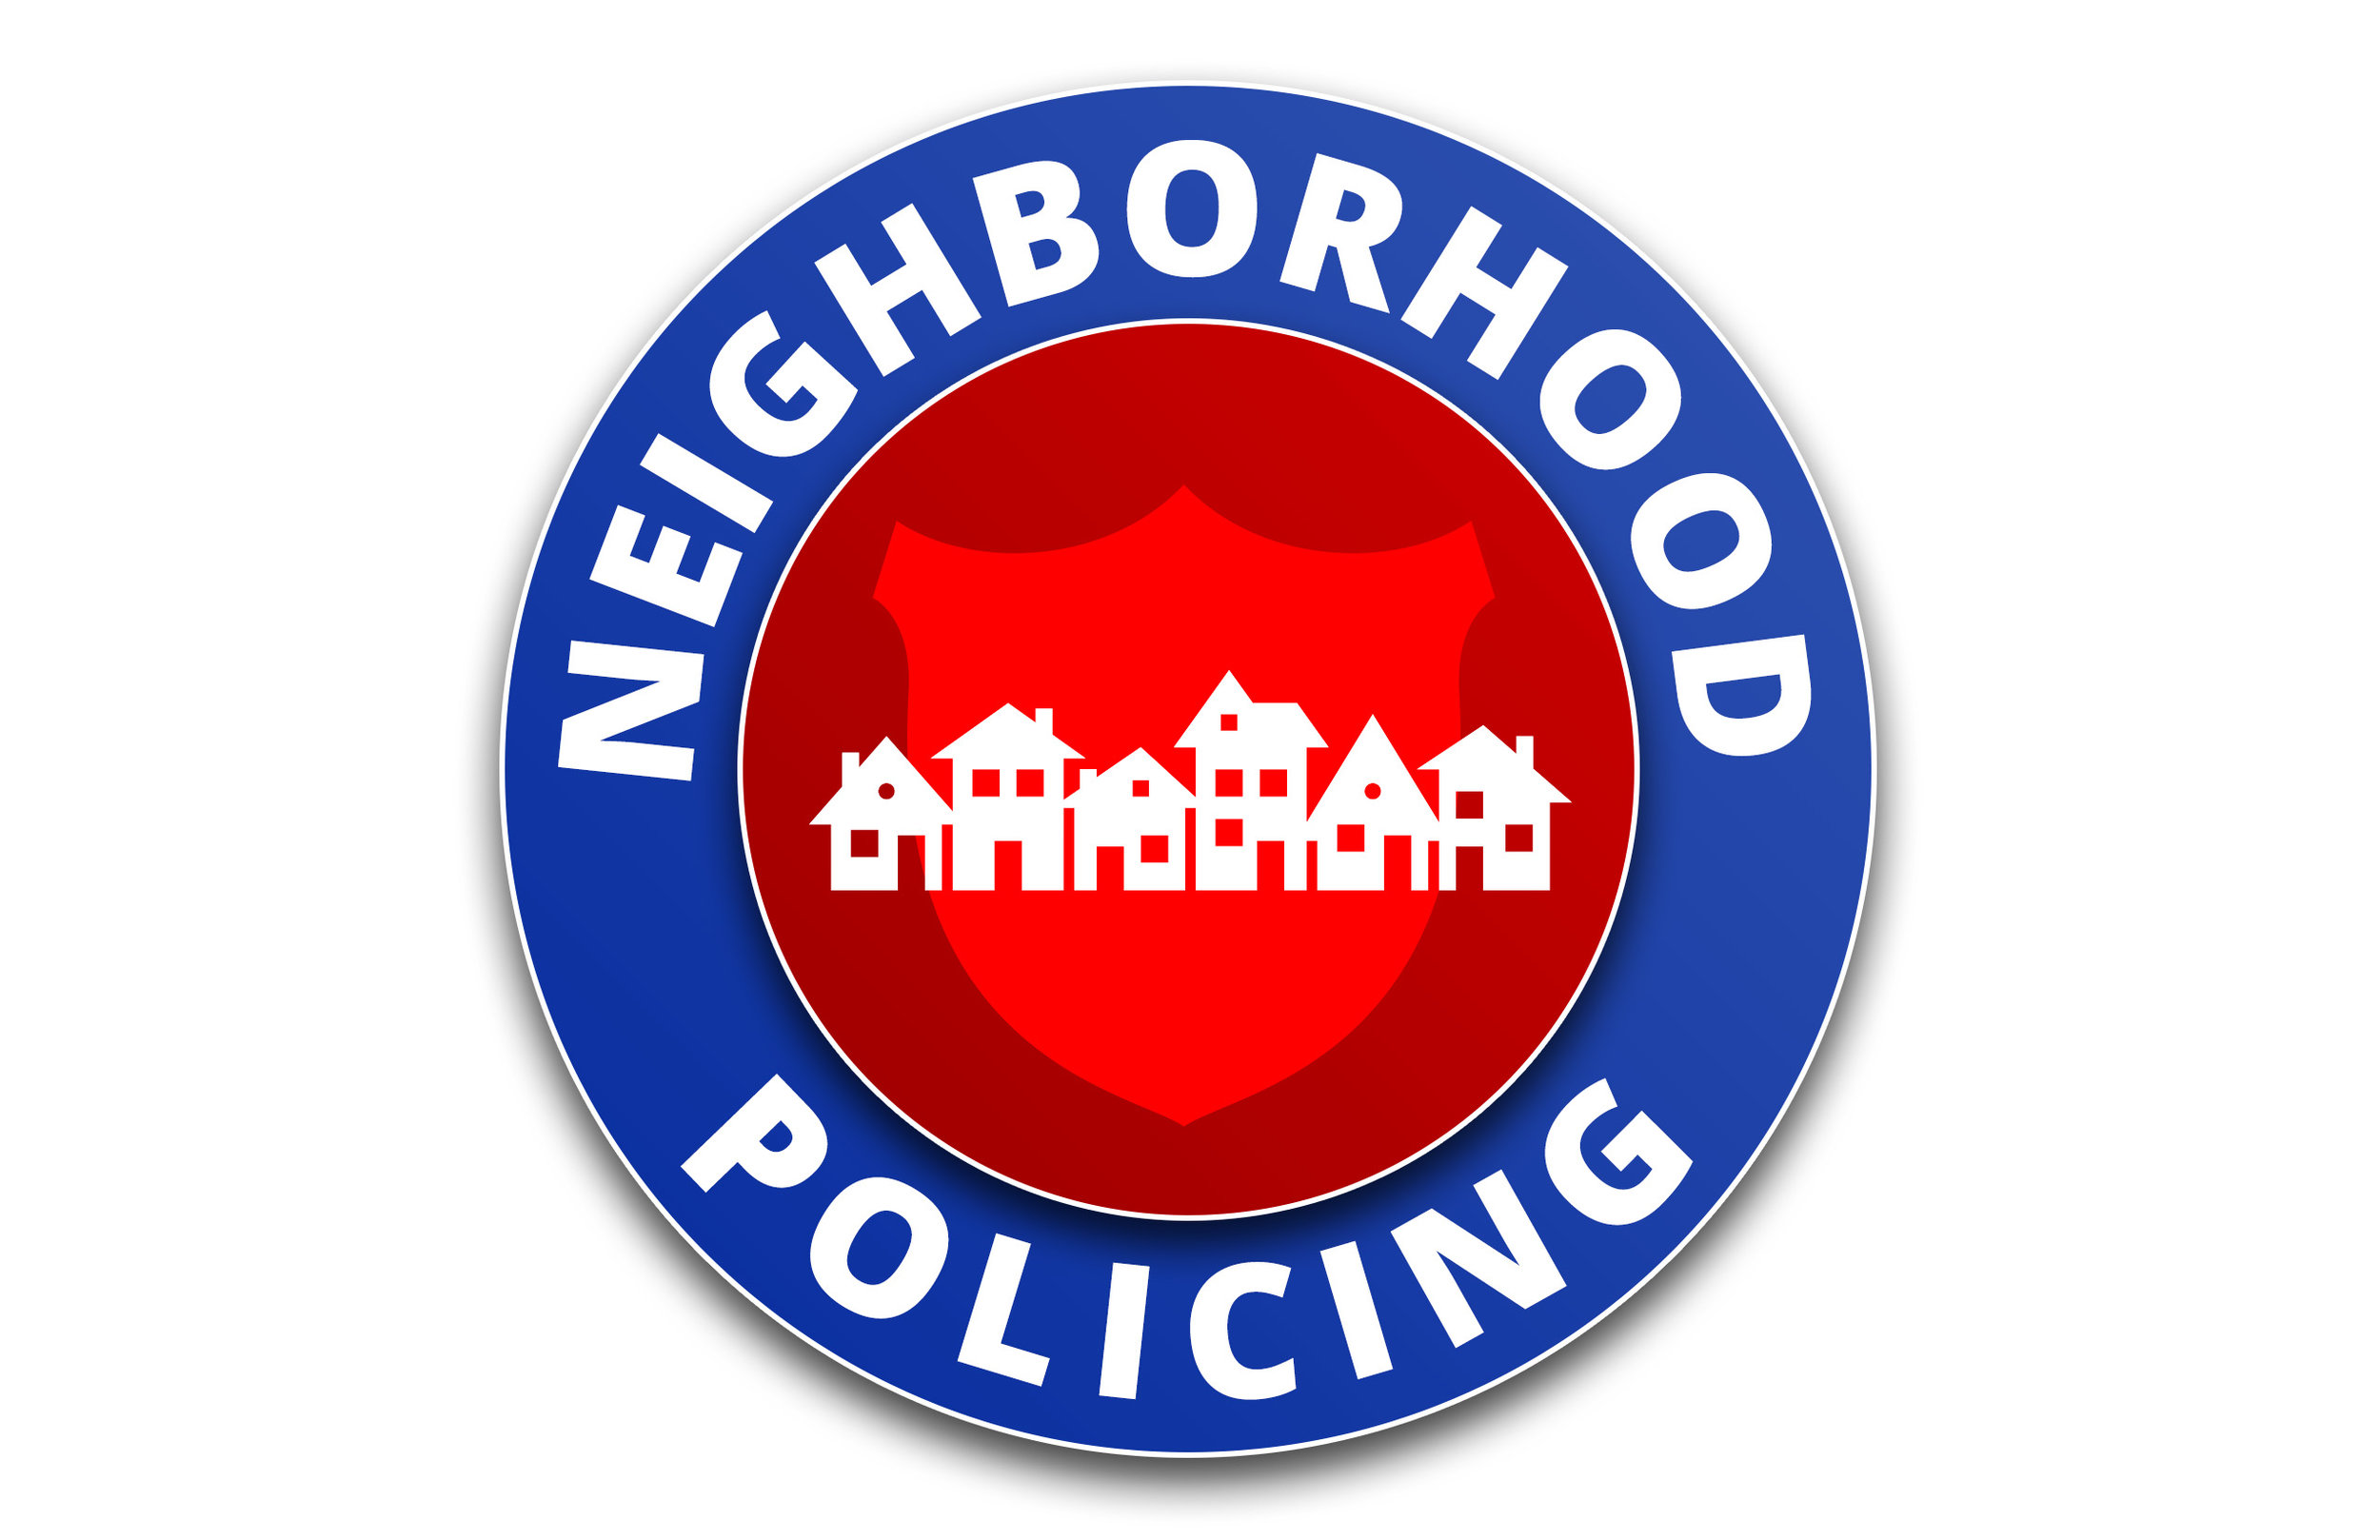 NeighborhoodPolicing_v1.jpg